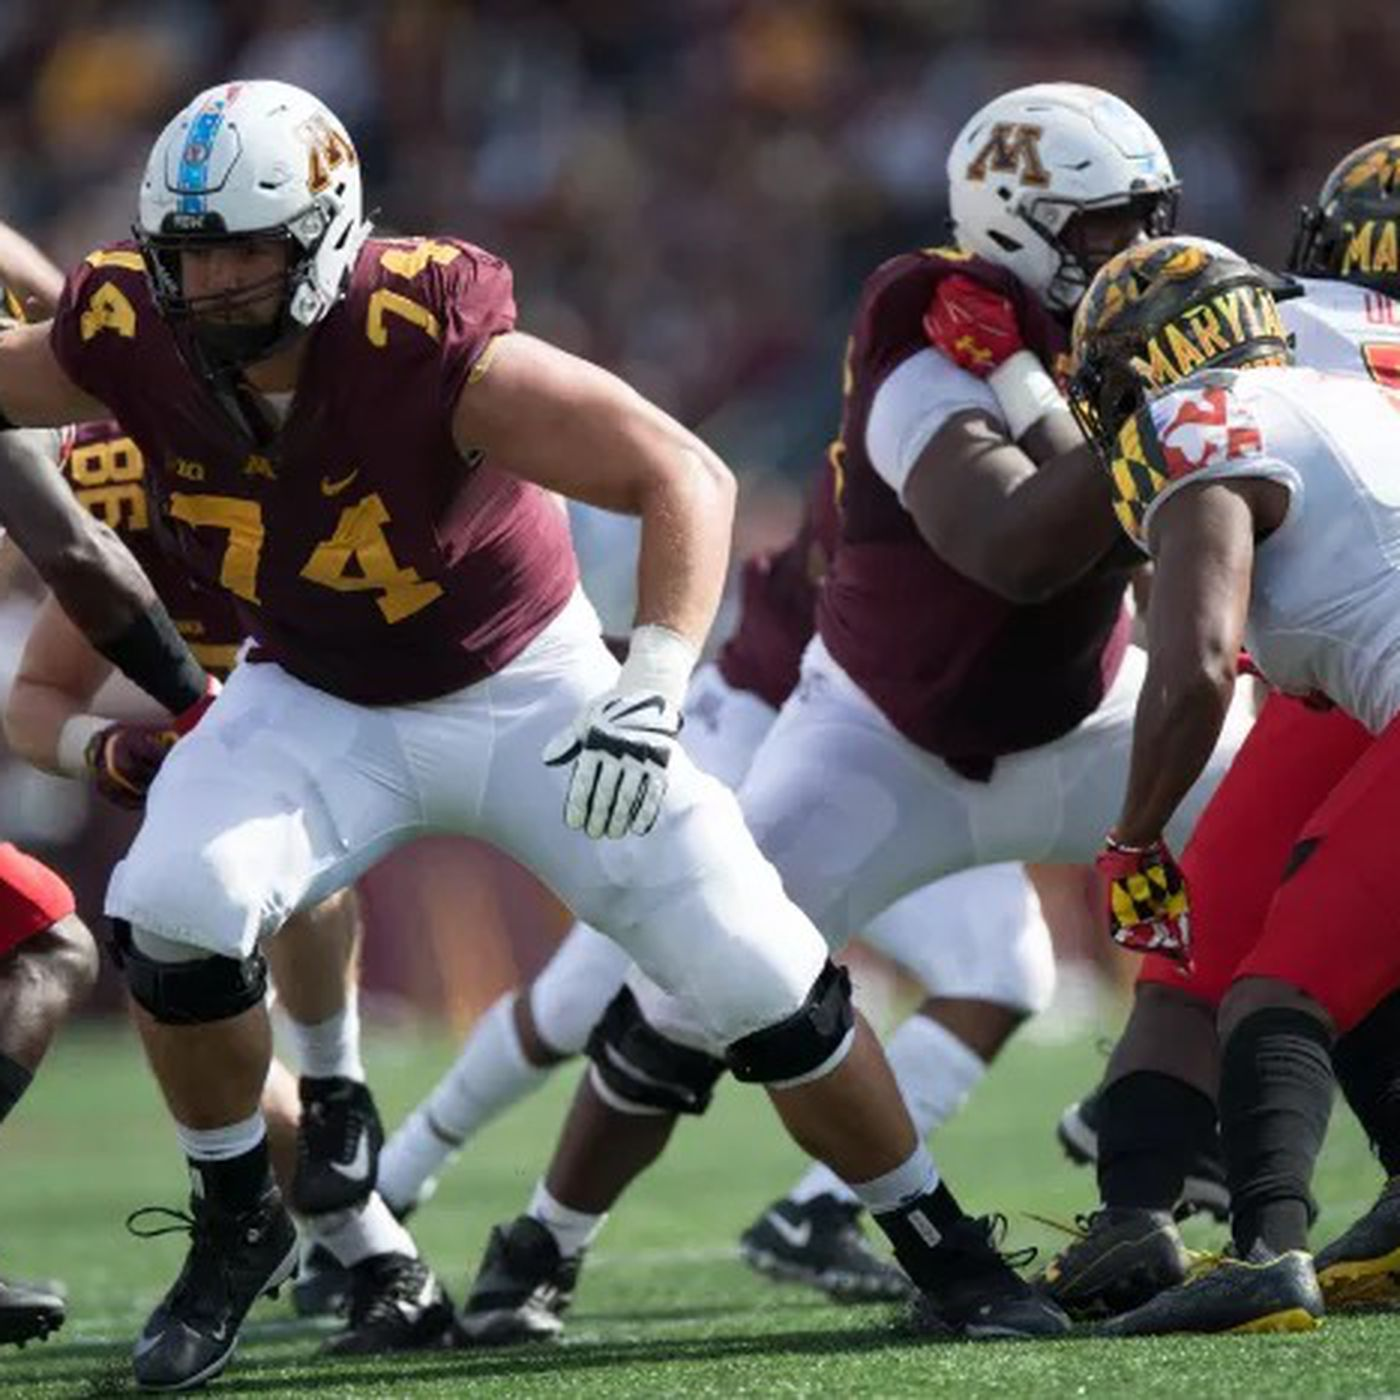 Former Gopher Nick Connelly dies at age 22 of Burkitt's